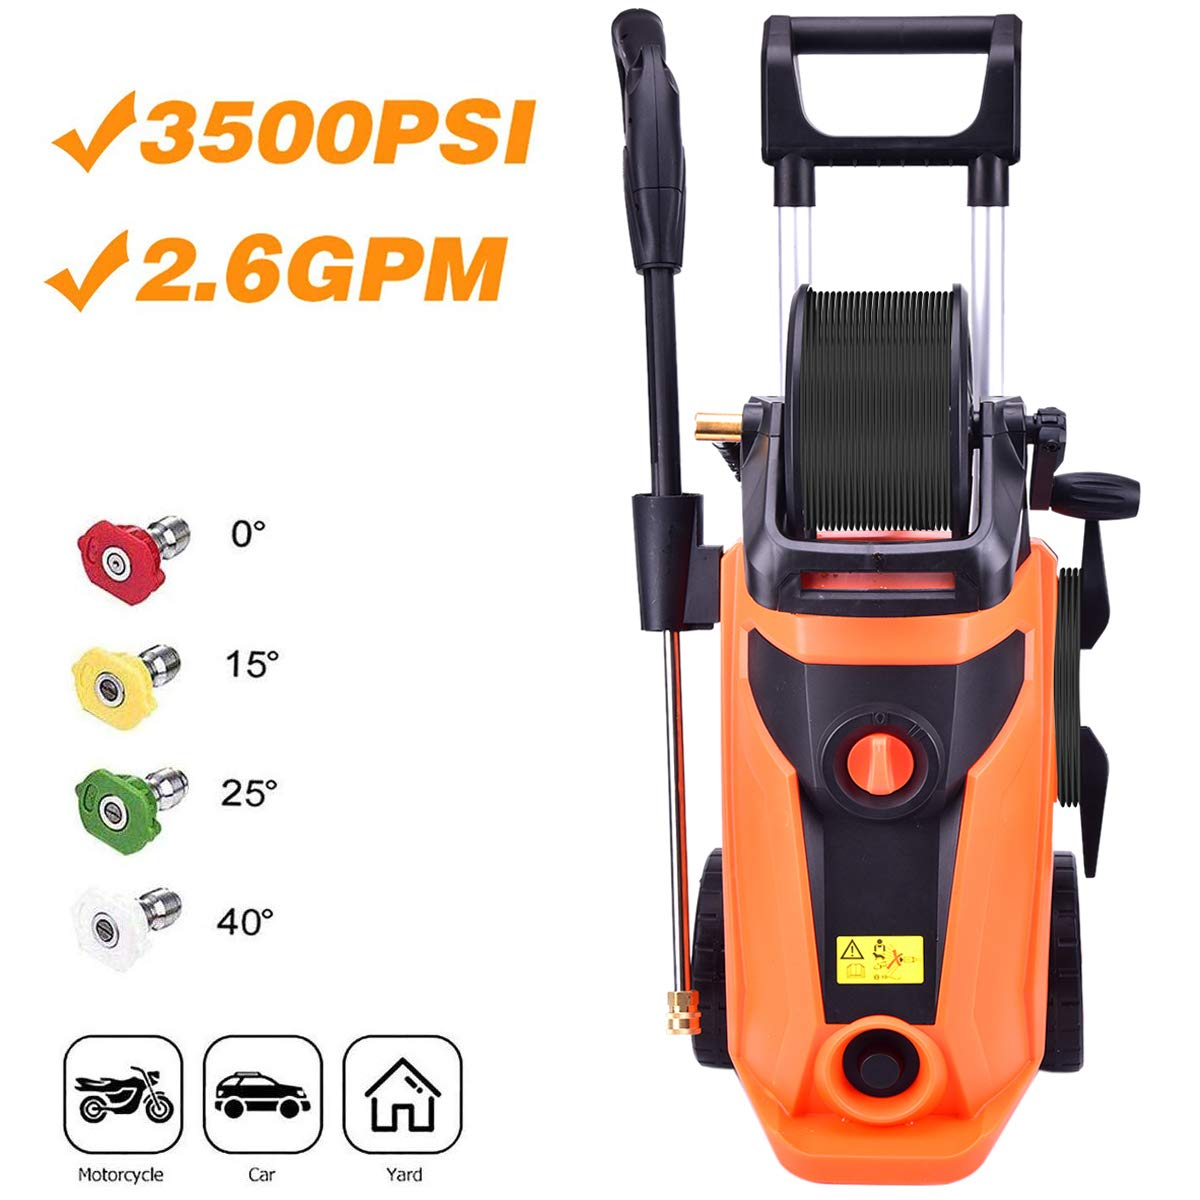 Richo 3000PSI Electric High Pressure Washer 1.8GPM 1800W Portable Power Washer with Hose Reel and 5 Interchangeable Nozzles